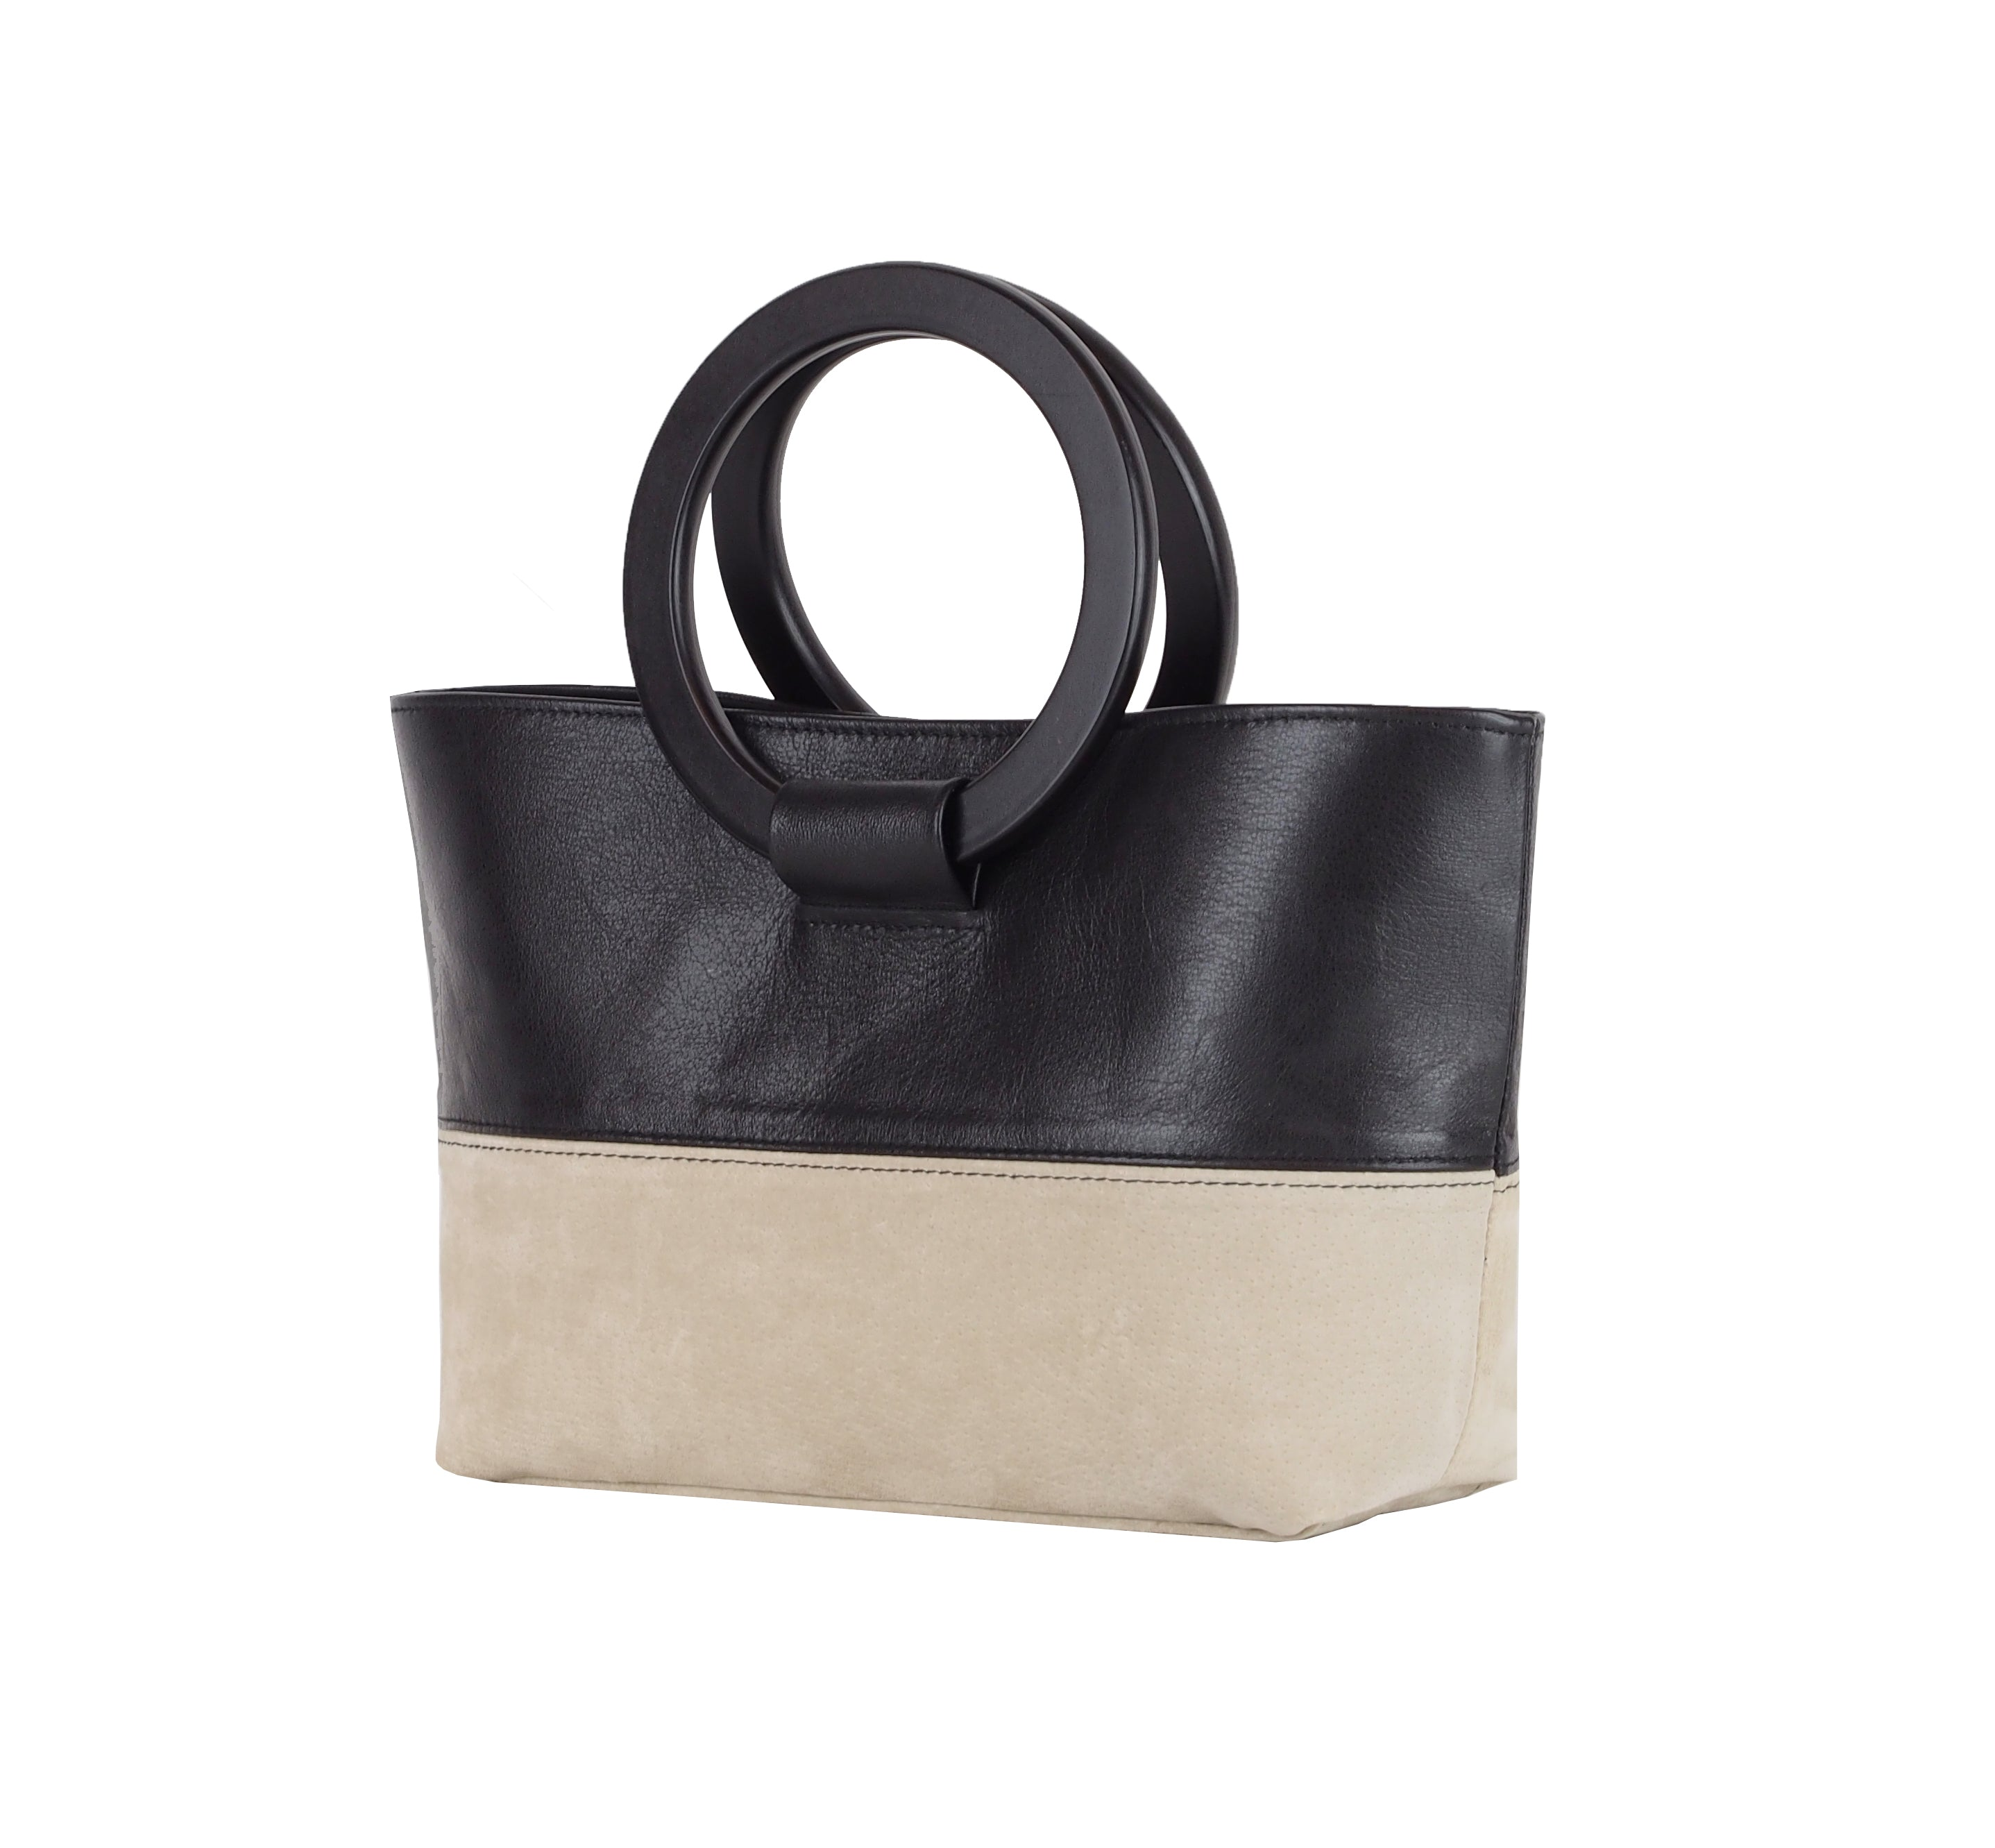 HANDBAG WITH ROUND HANDLES